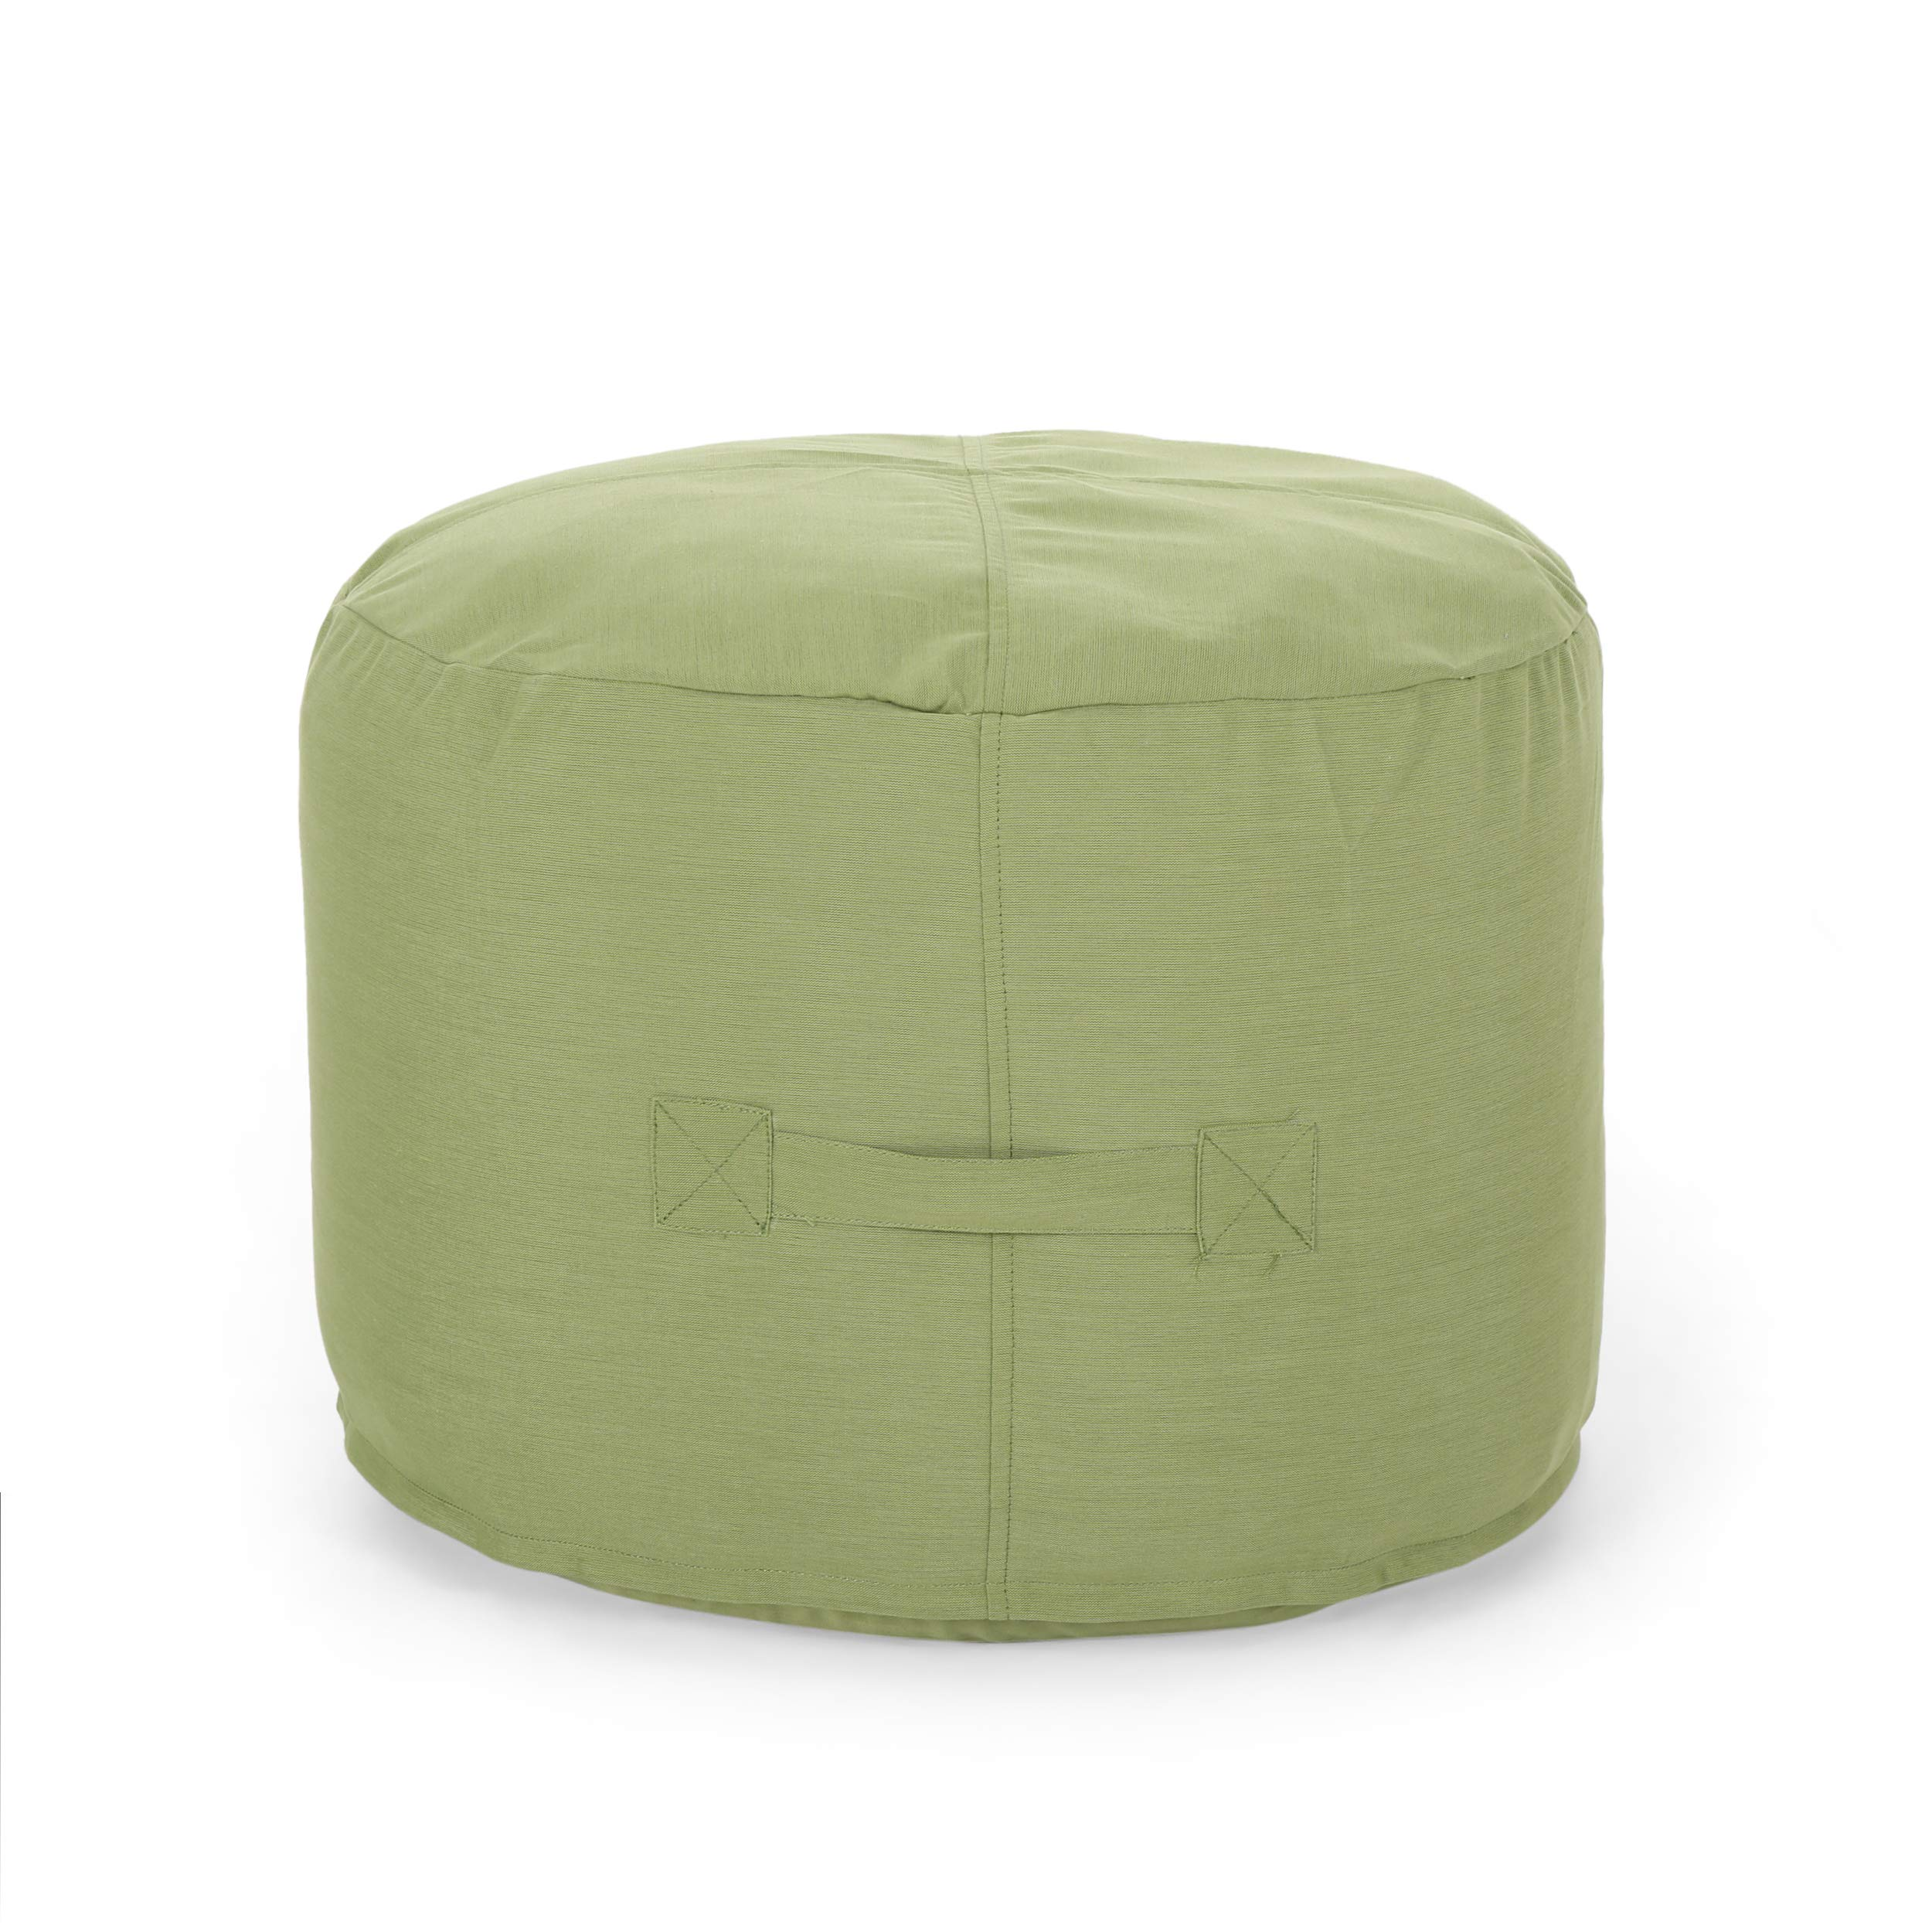 Great Deal Furniture 307772 Crystal Cay Outdoor Water Resistant 2' Ottoman Pouf, Green